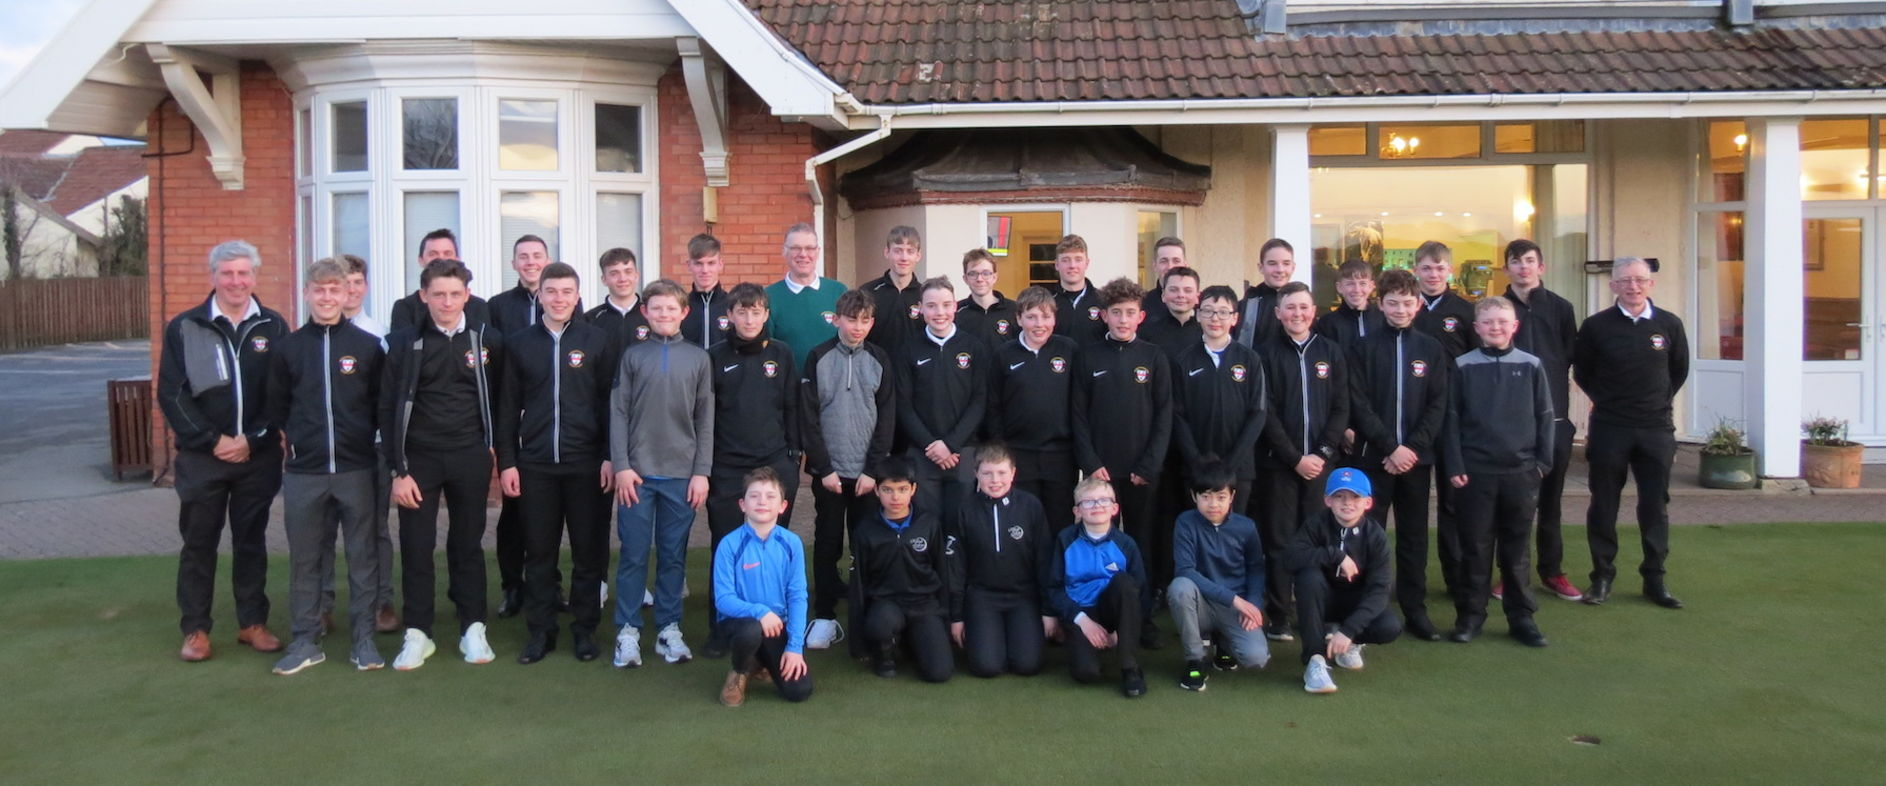 County Boys visit Burnham and Berrow for a great day out -15.3.20